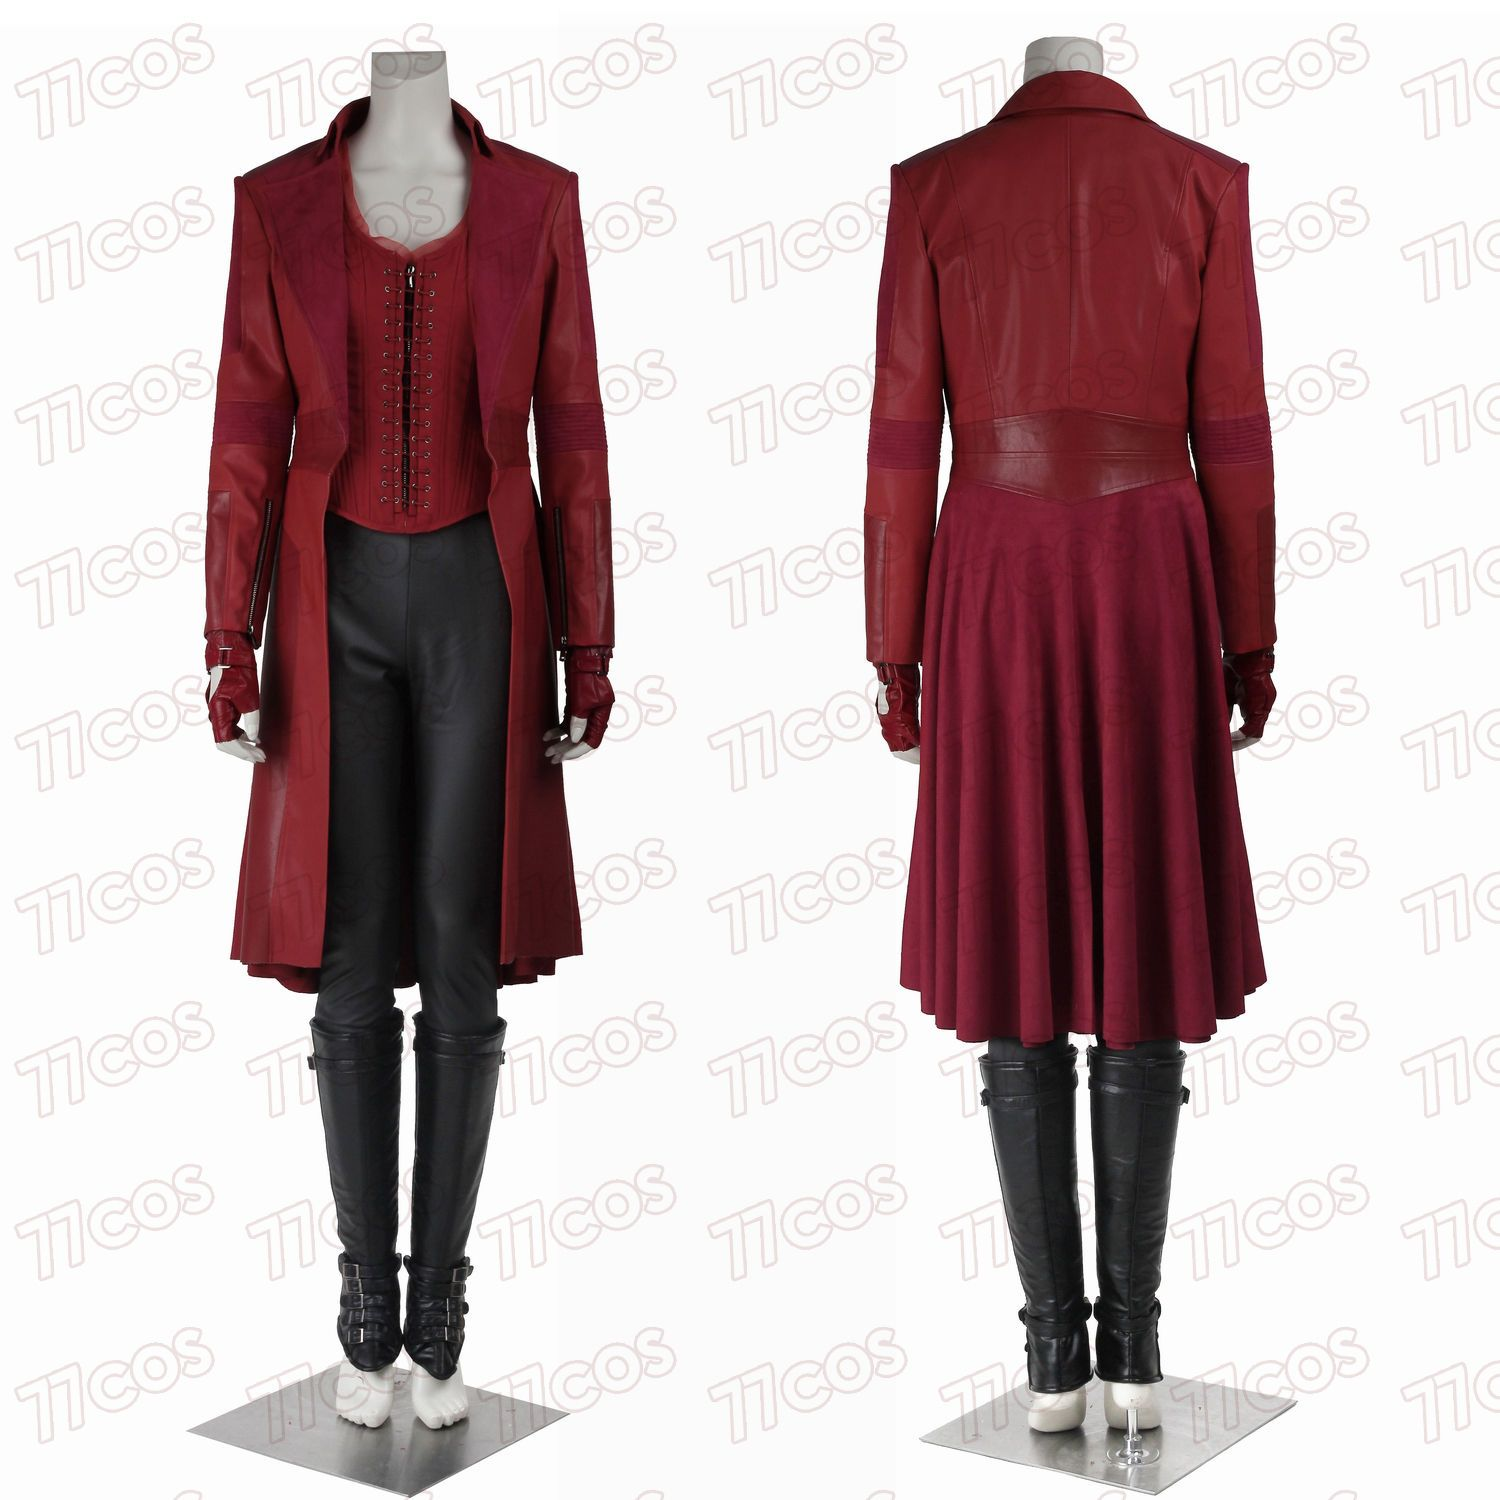 Captain America Civil War Scarlet Witch Cosplay Costume Full Set